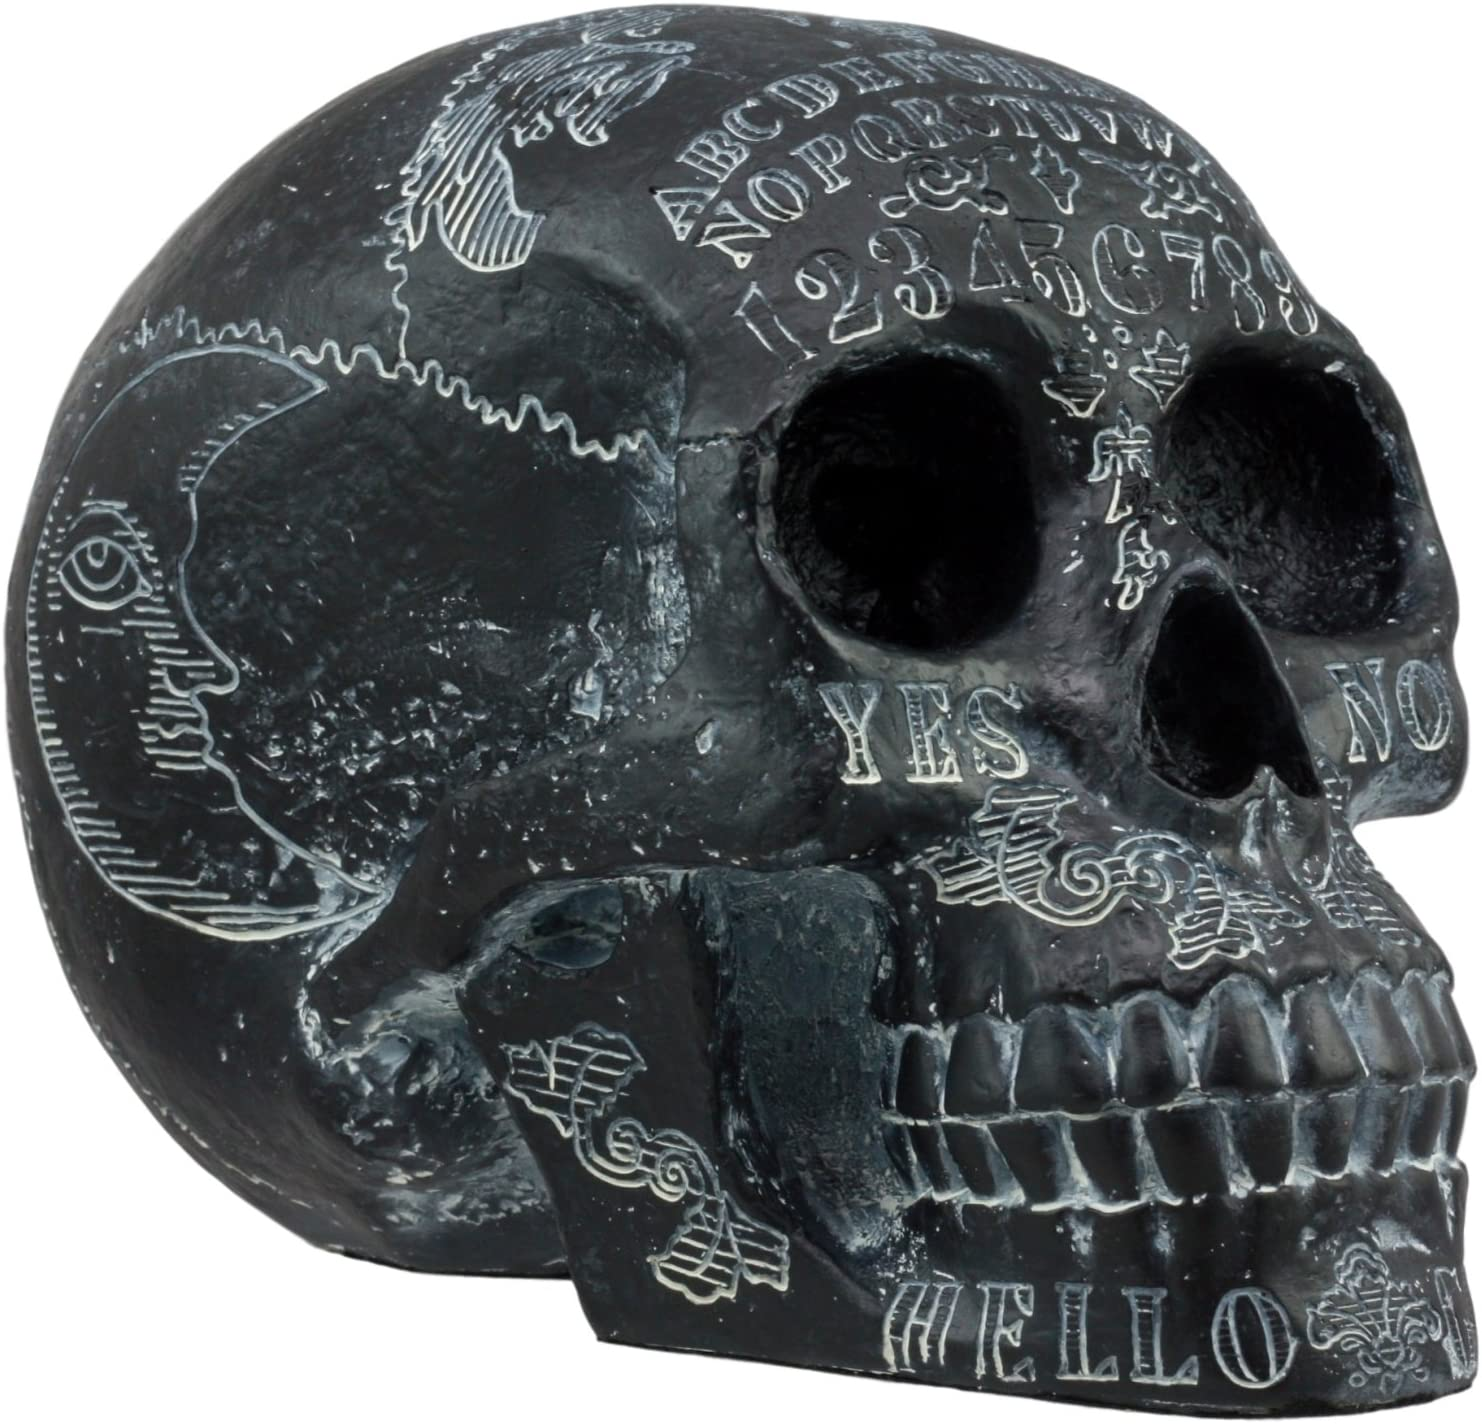 Ebros Black Solar Astrology Paranormal Spirit Super beauty product restock quality top! Limited Special Price Statue Skull Ouija